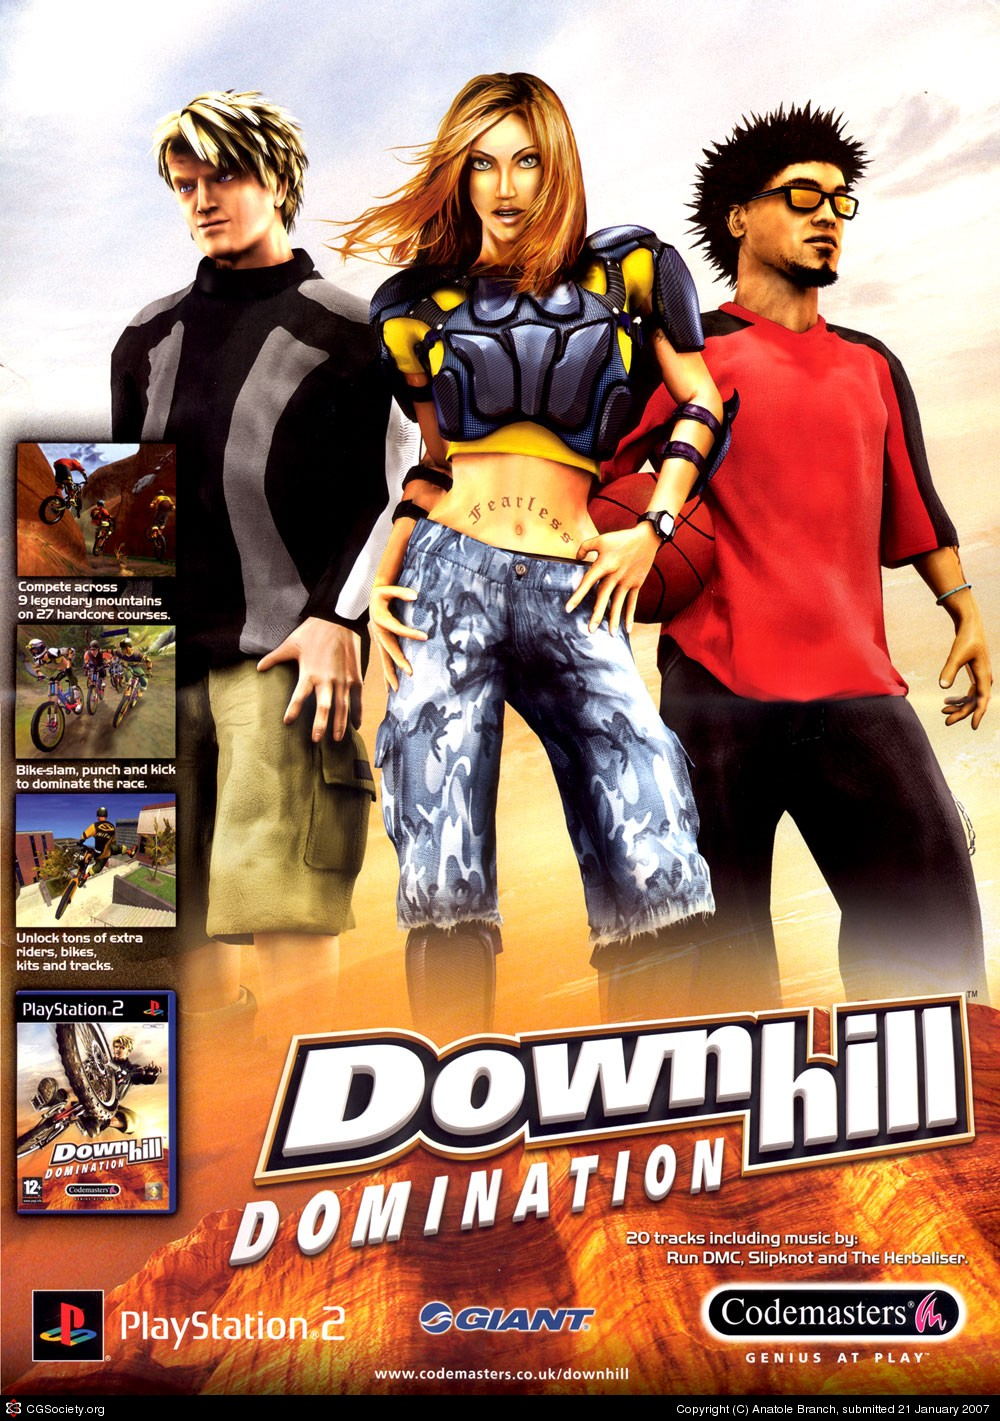 Downhill domination characters above told